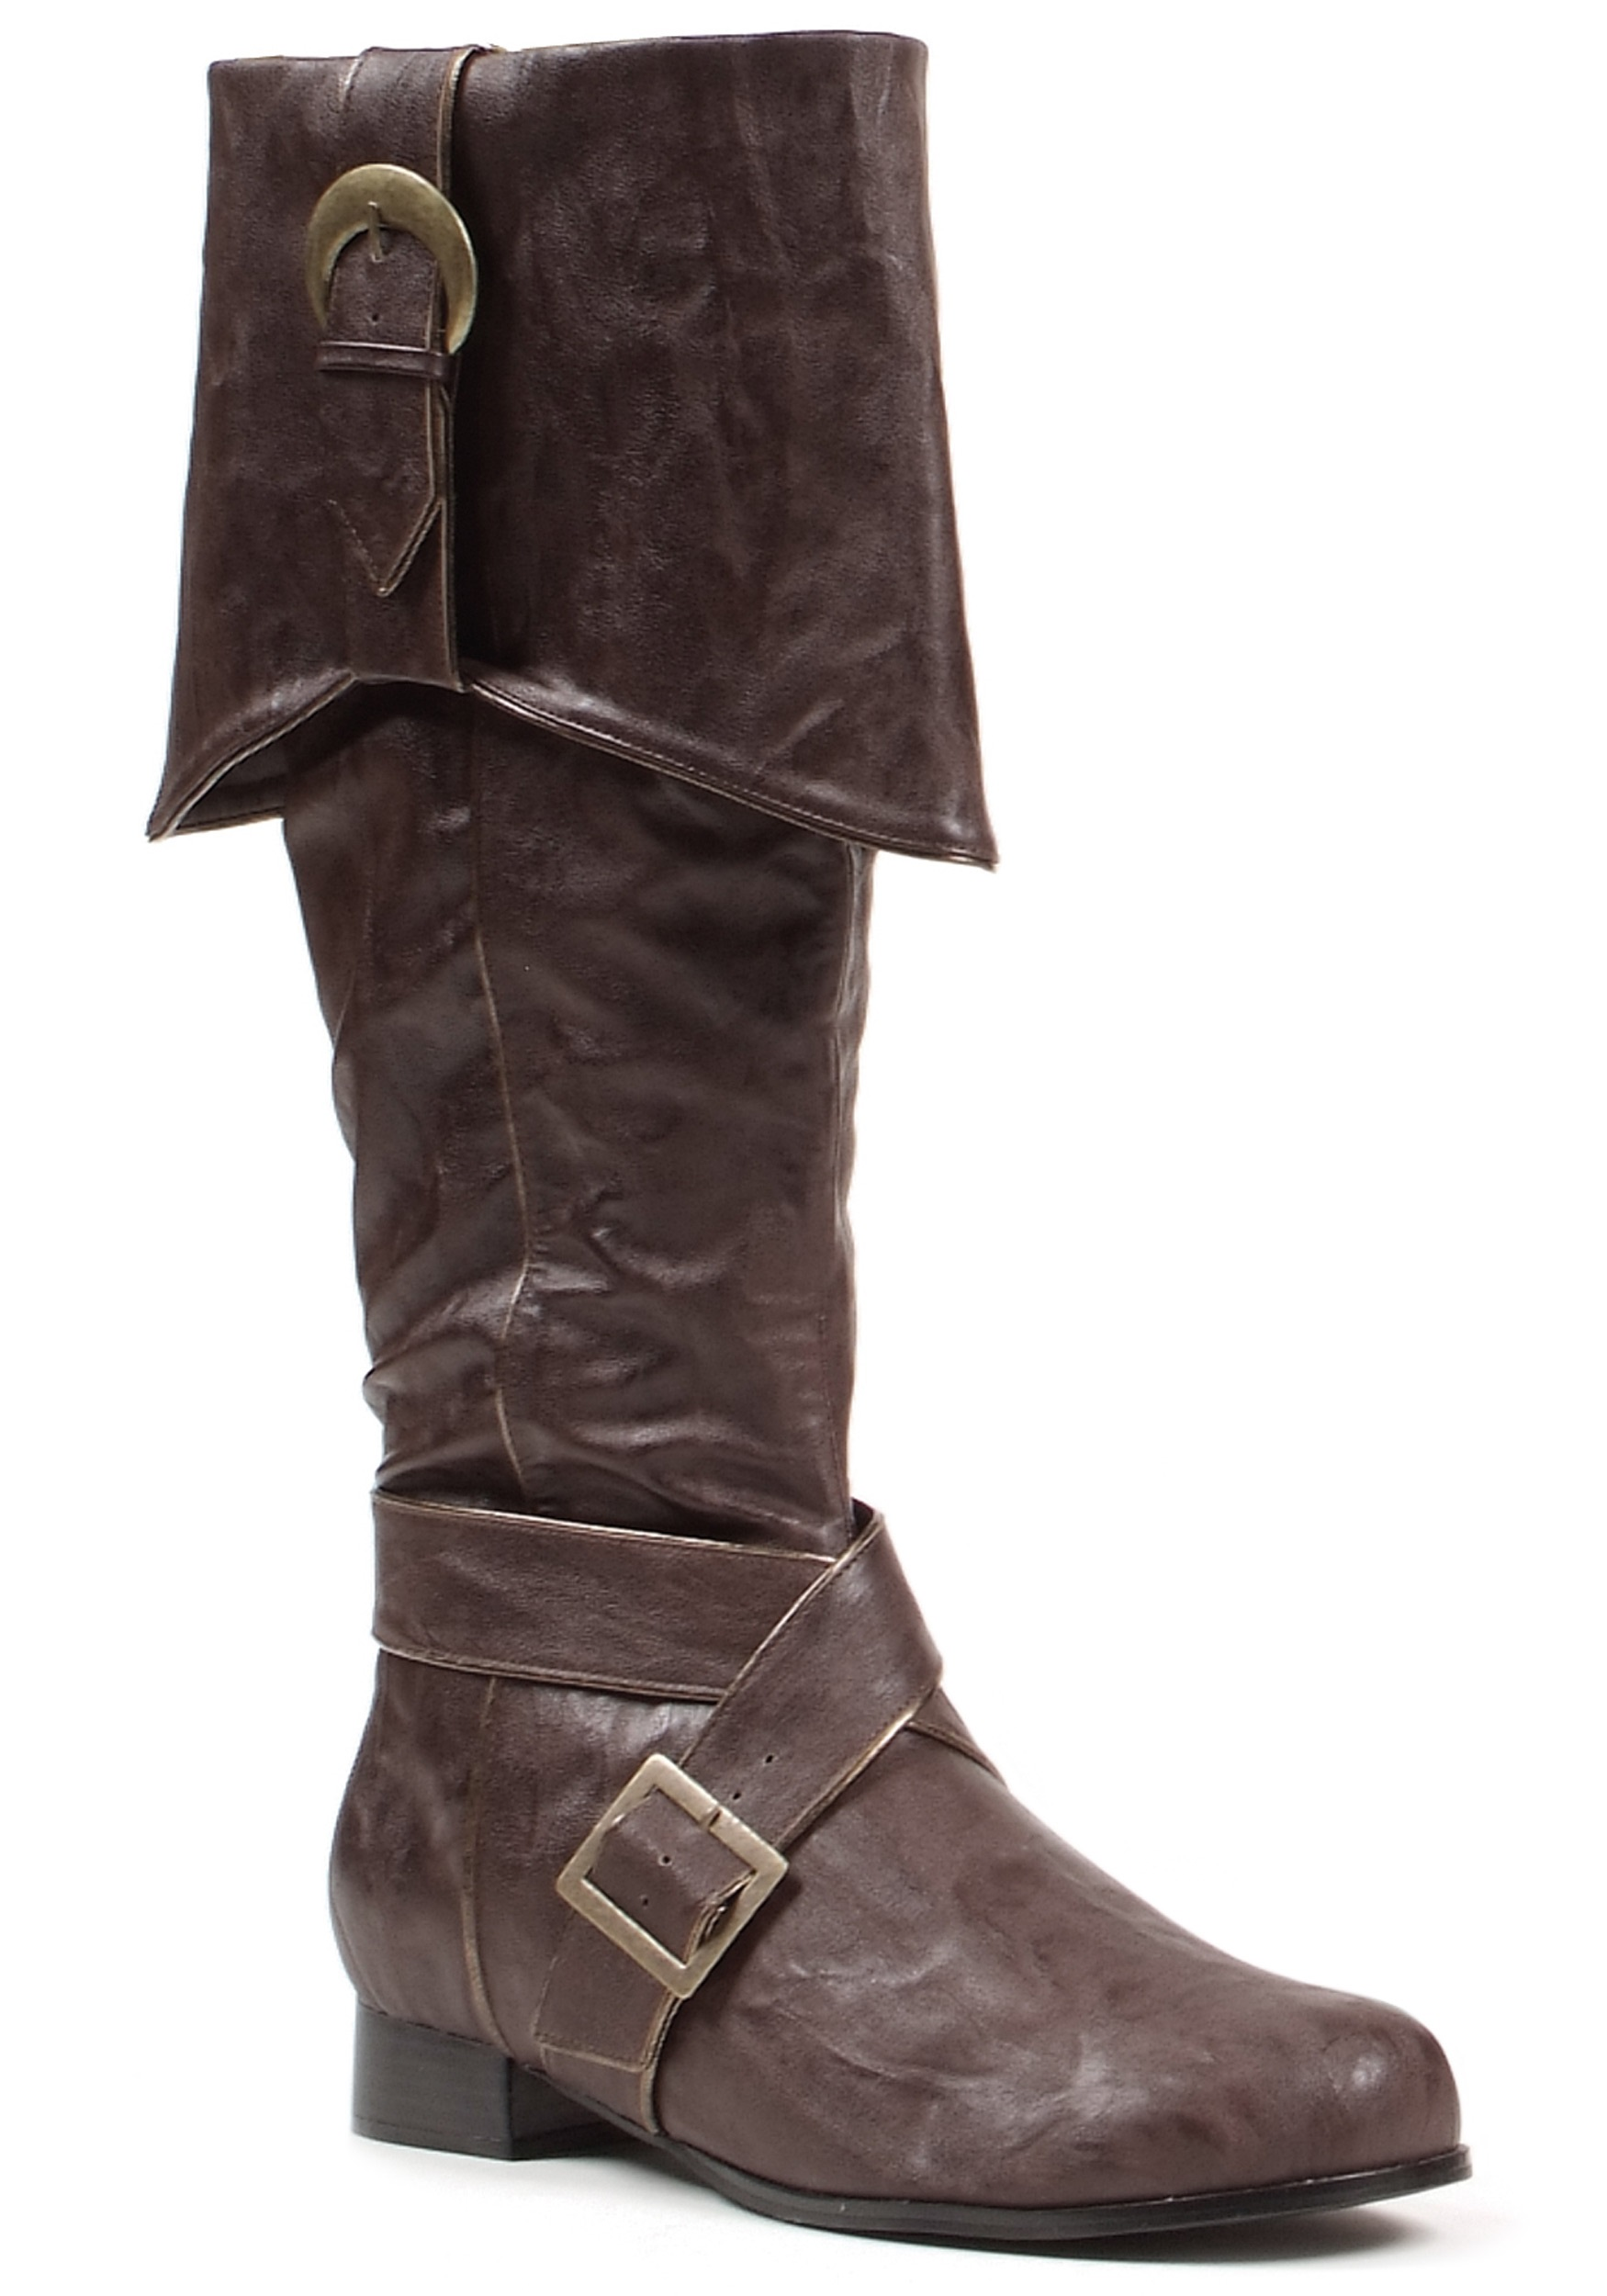 Mens Brown Buckle Pirate Boots Economical, stylish, and eye-catching shoes